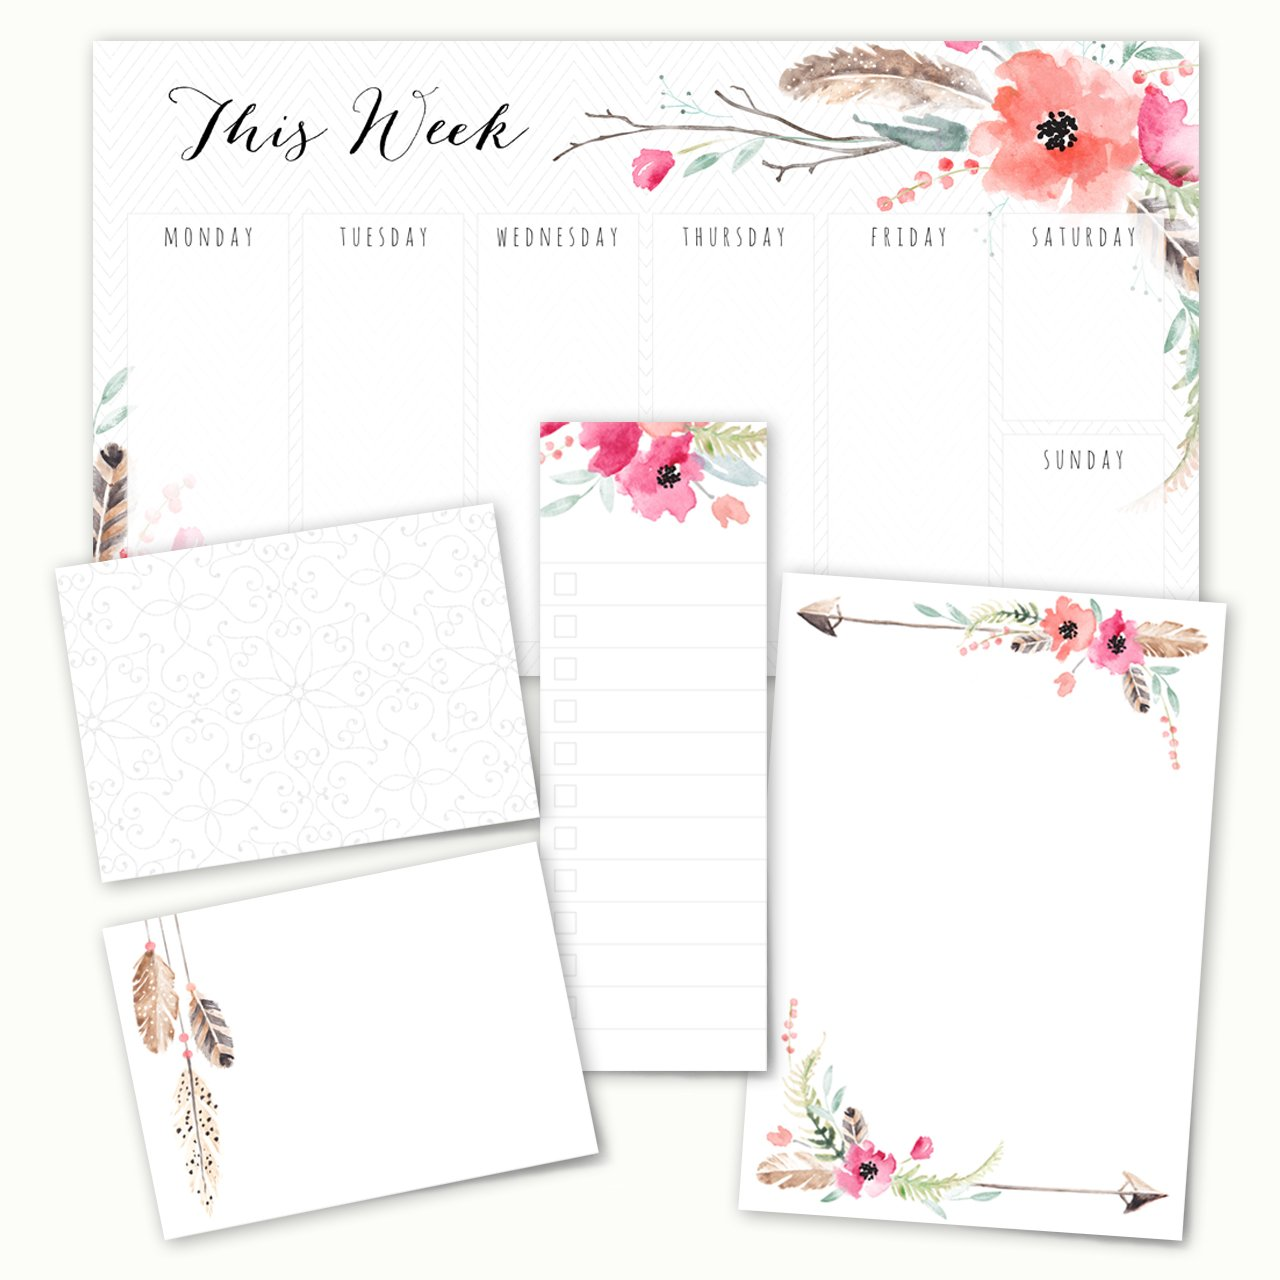 Boho Spirit Adhesive Sticky Note Pack - 5 Pads - 50 Sheets/pad by Canopy Street